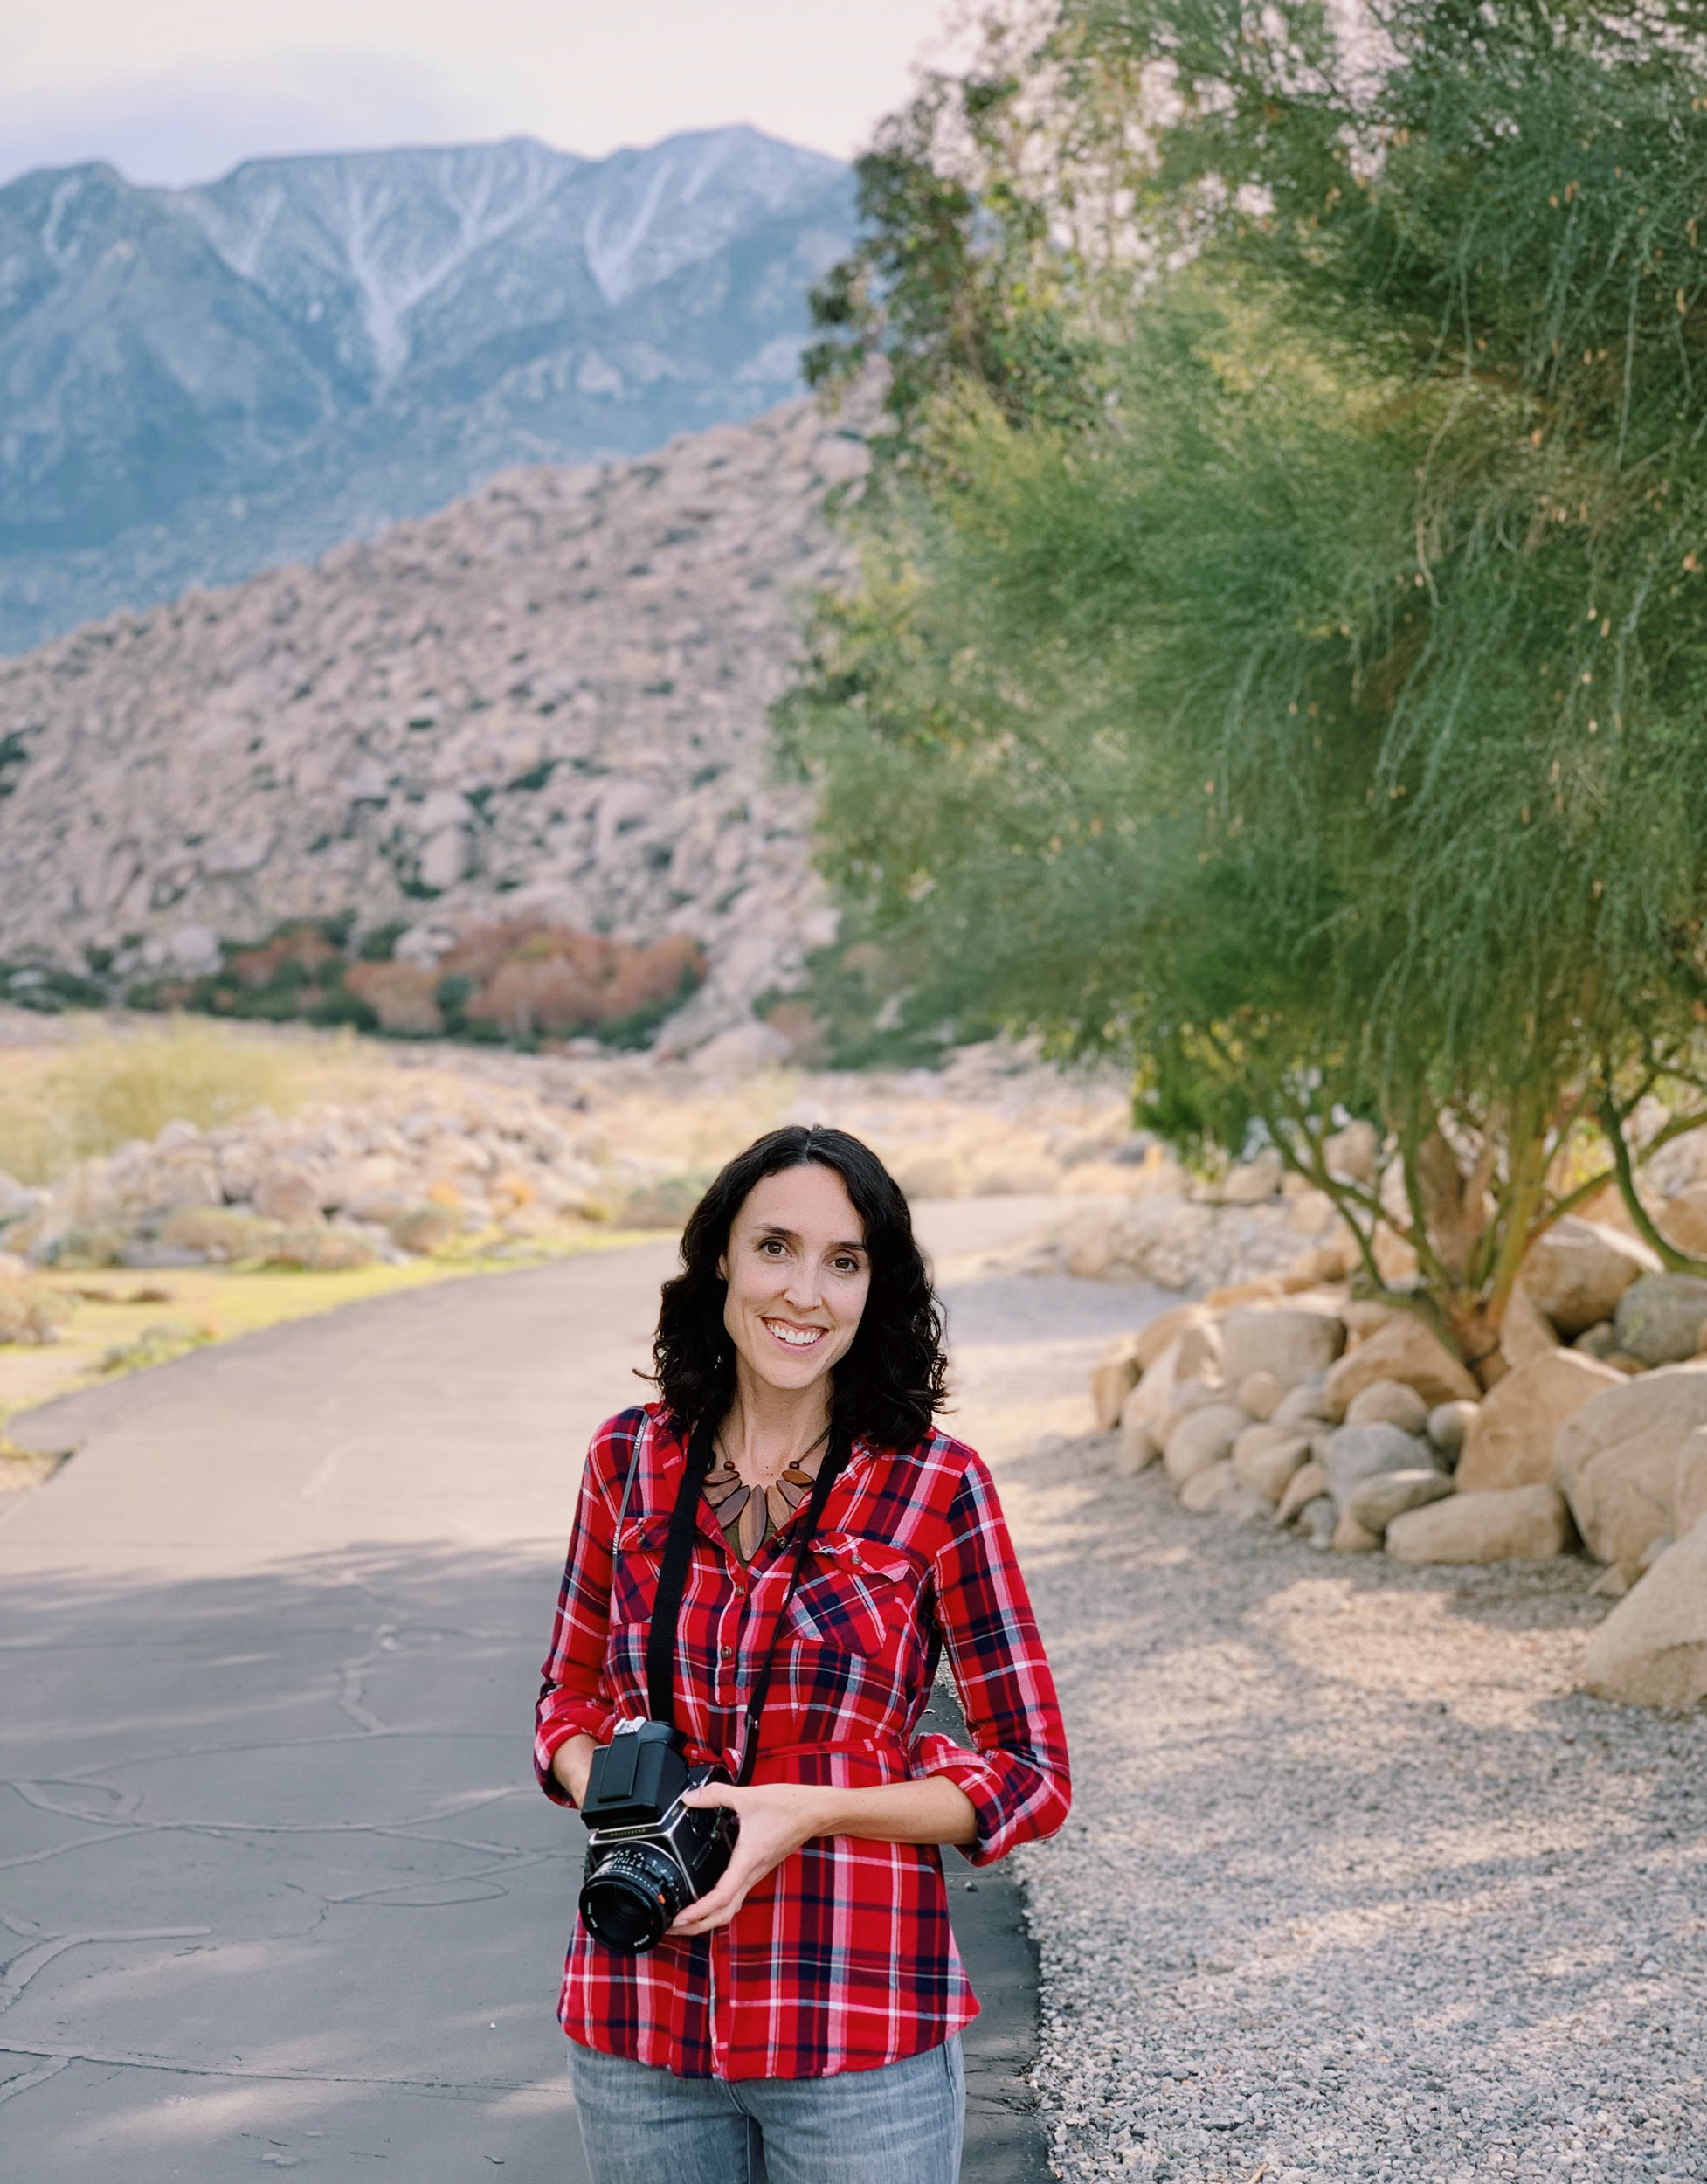 Wedding and Portrait Professional Photographer Sonya Yruel in Palm Springs California with her Hasselblad